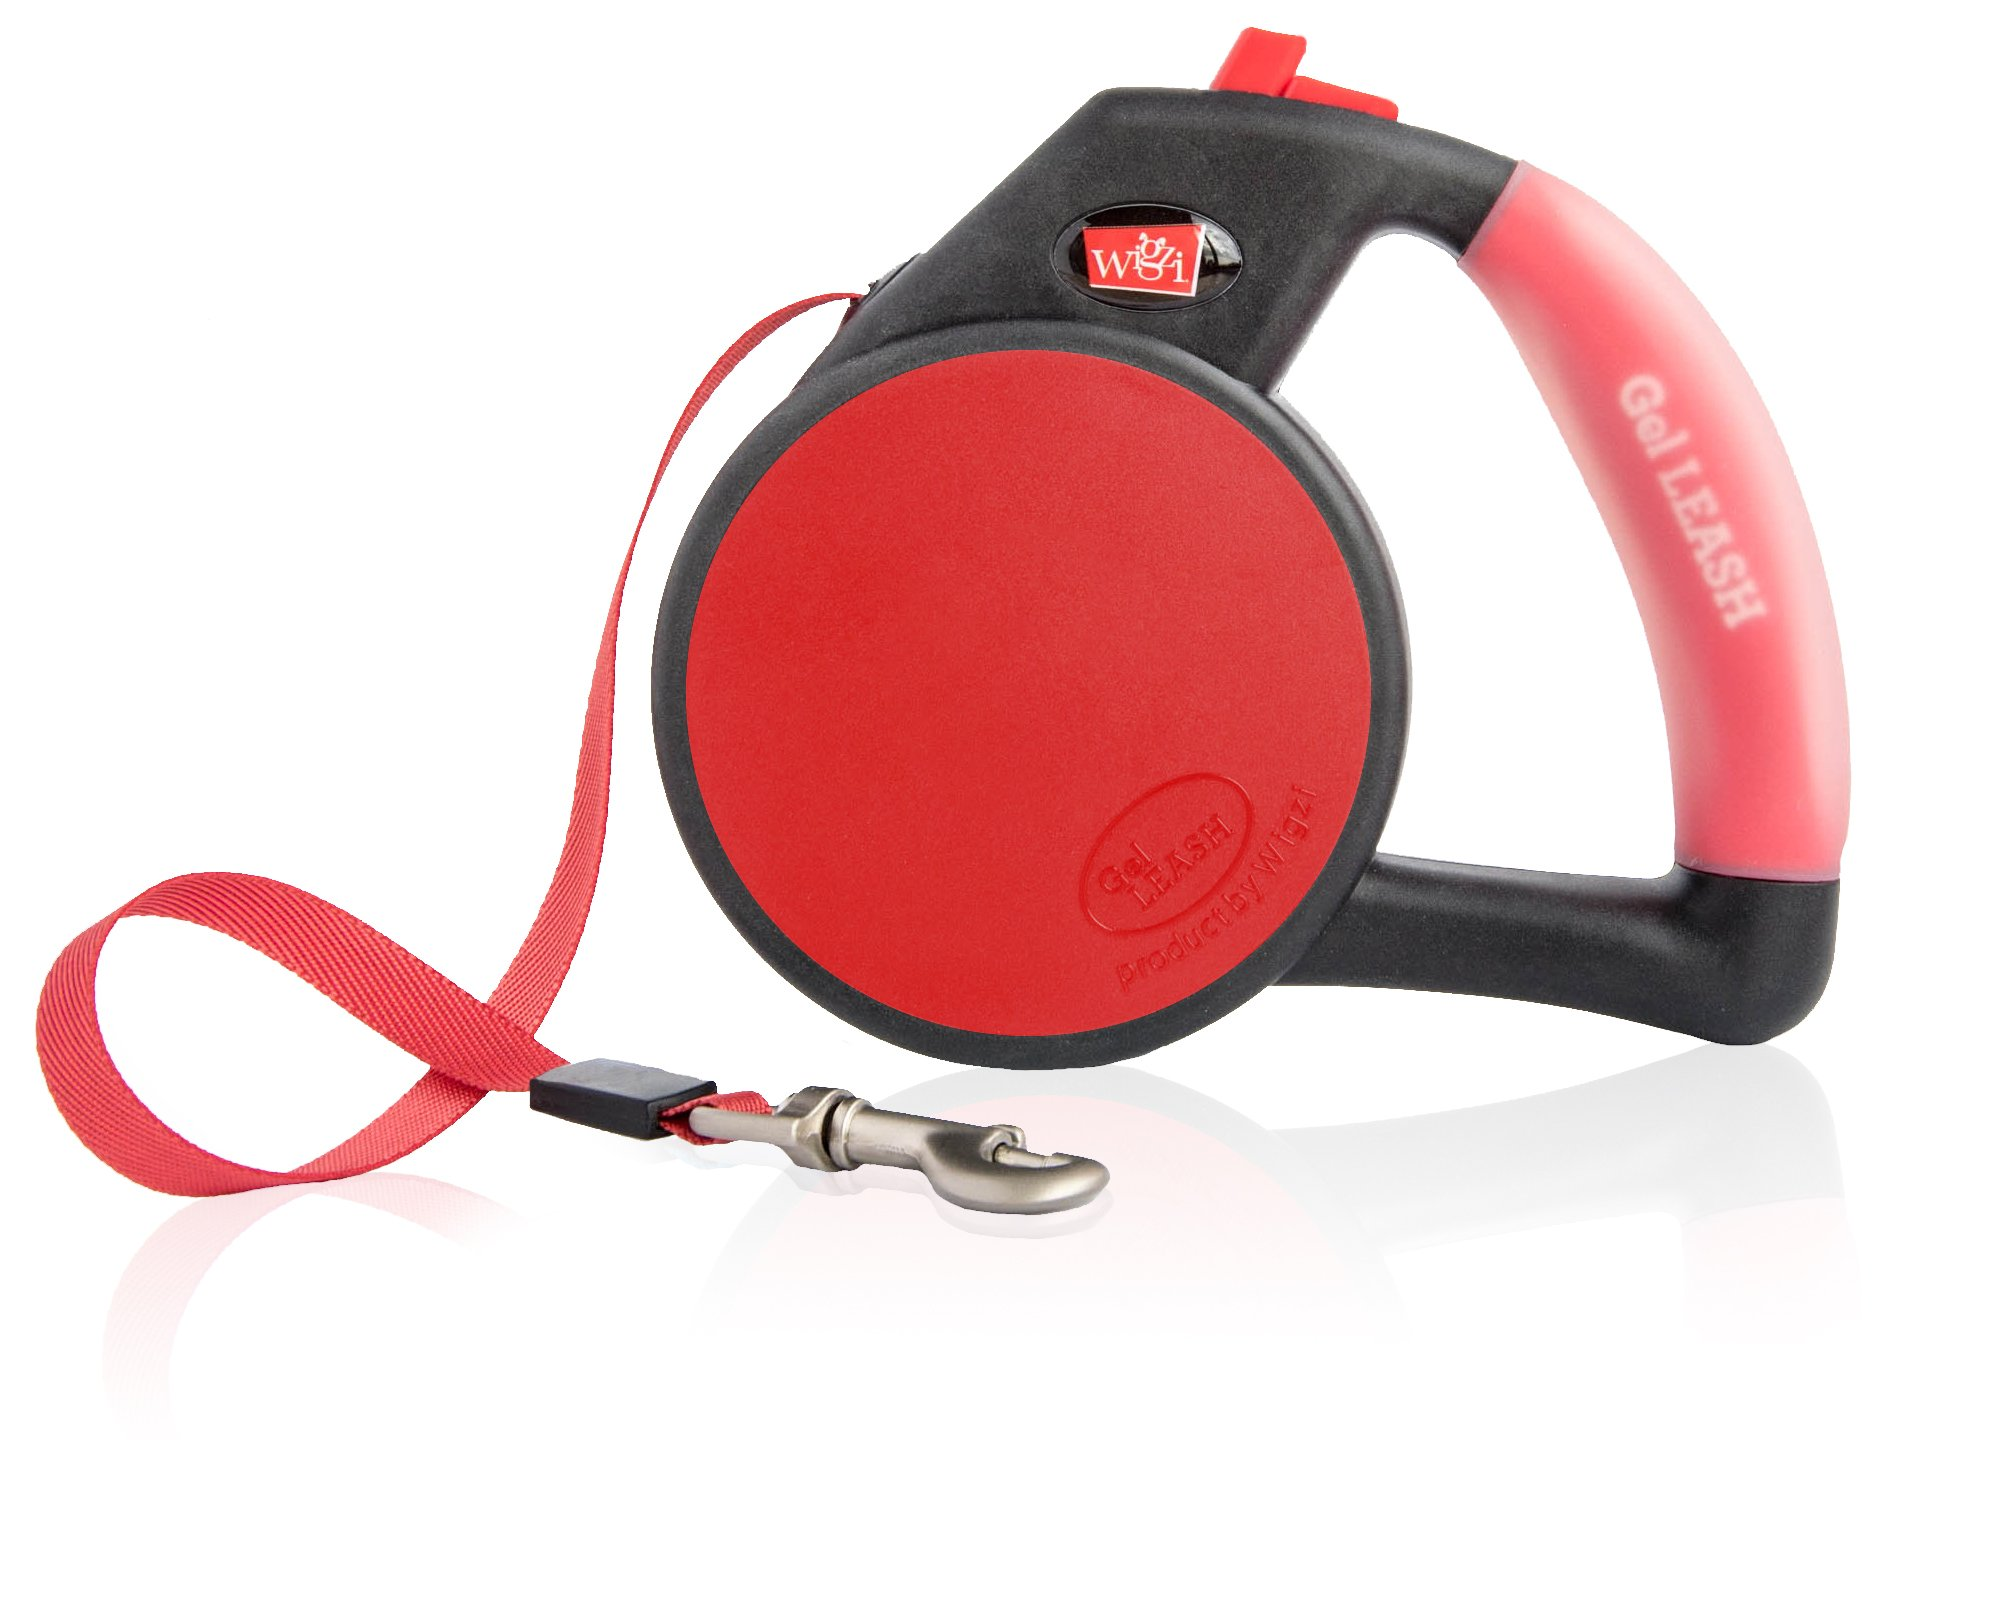 Dog Leash - Retractable Gel Pet Leash - World's Most Comfortable Handle - Red Small